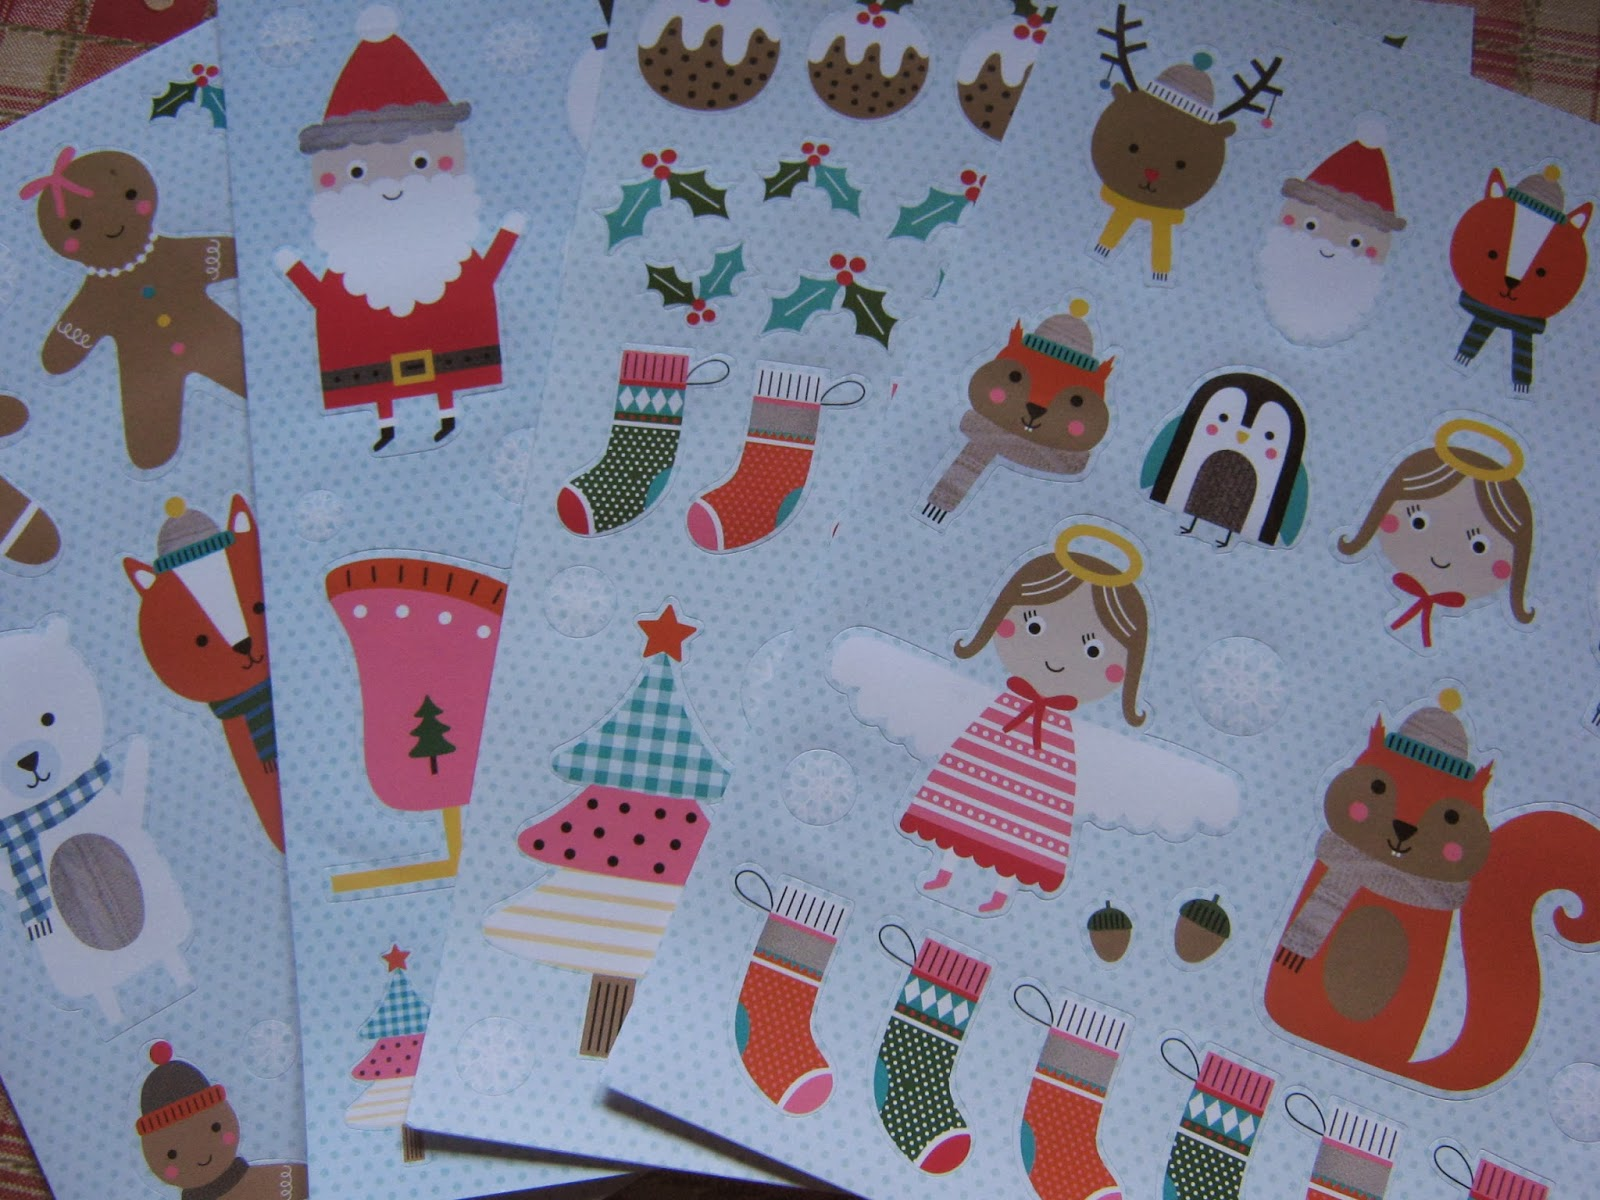 Wilkos Christmas Stickers